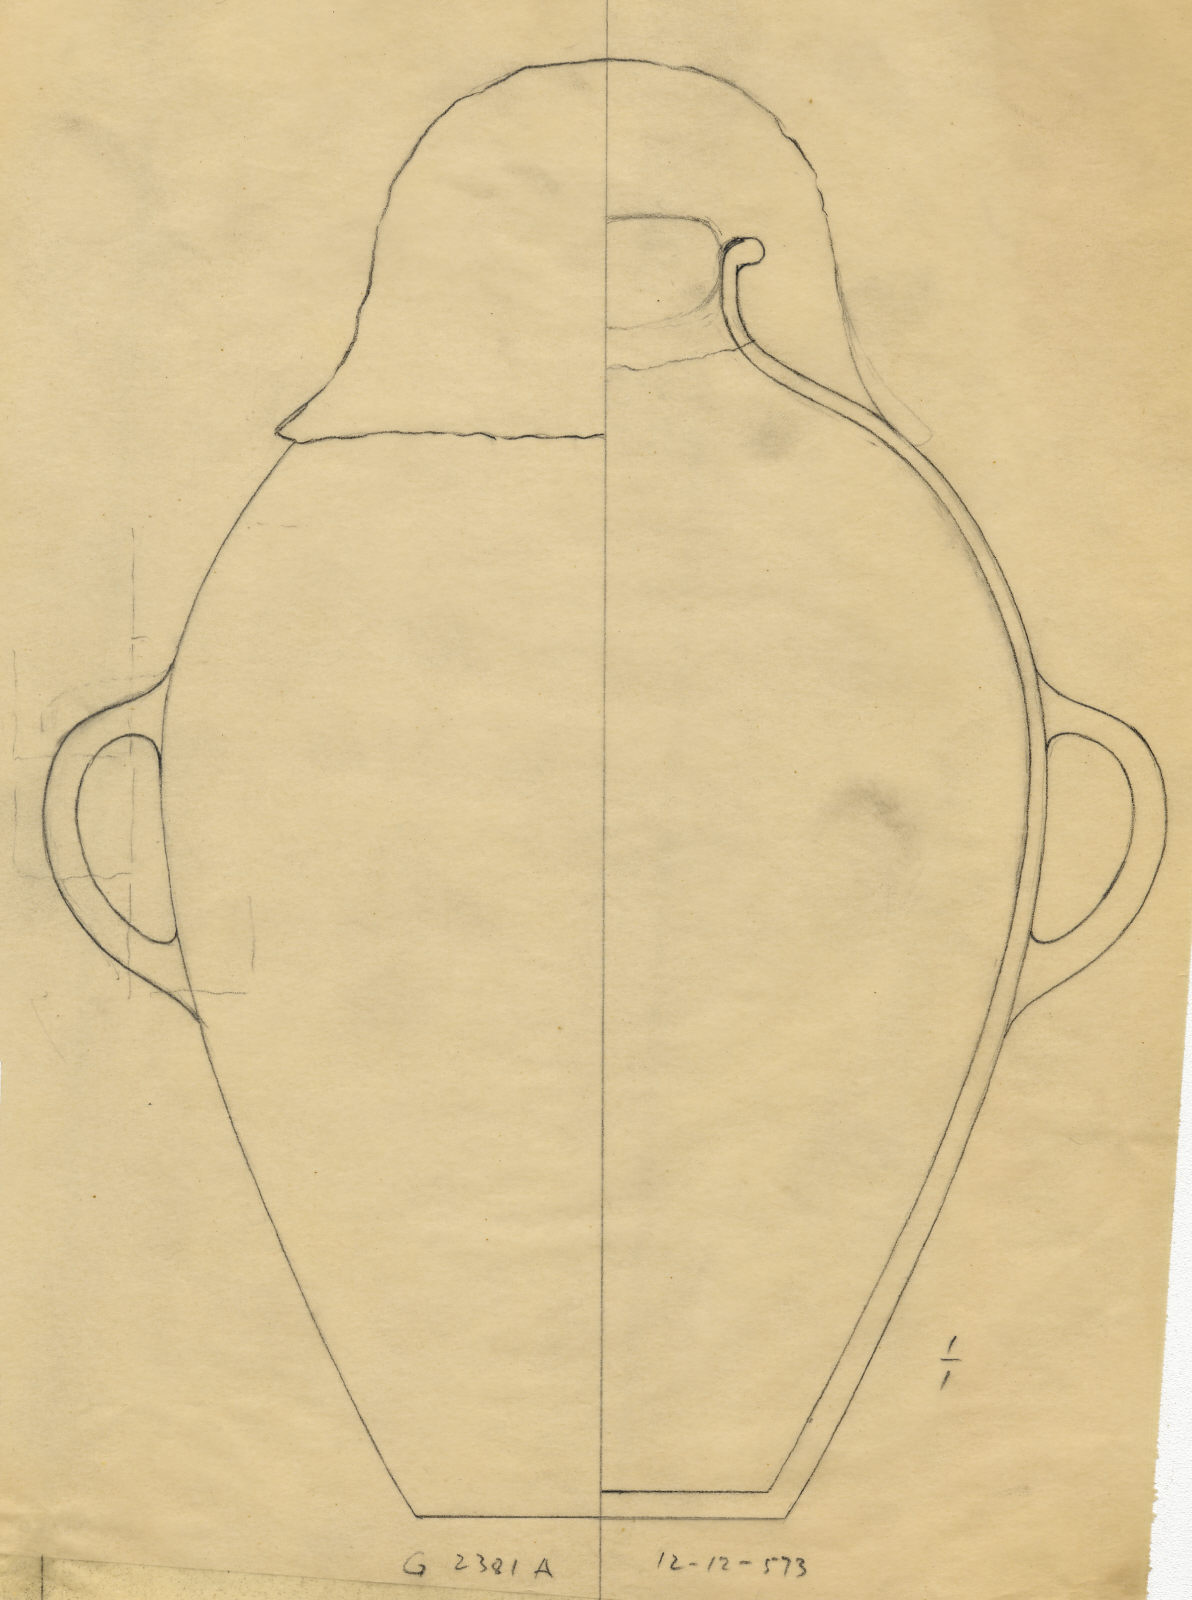 Drawings: G 2381, Shaft A: pottery, jar with two handles, sealed with stopper